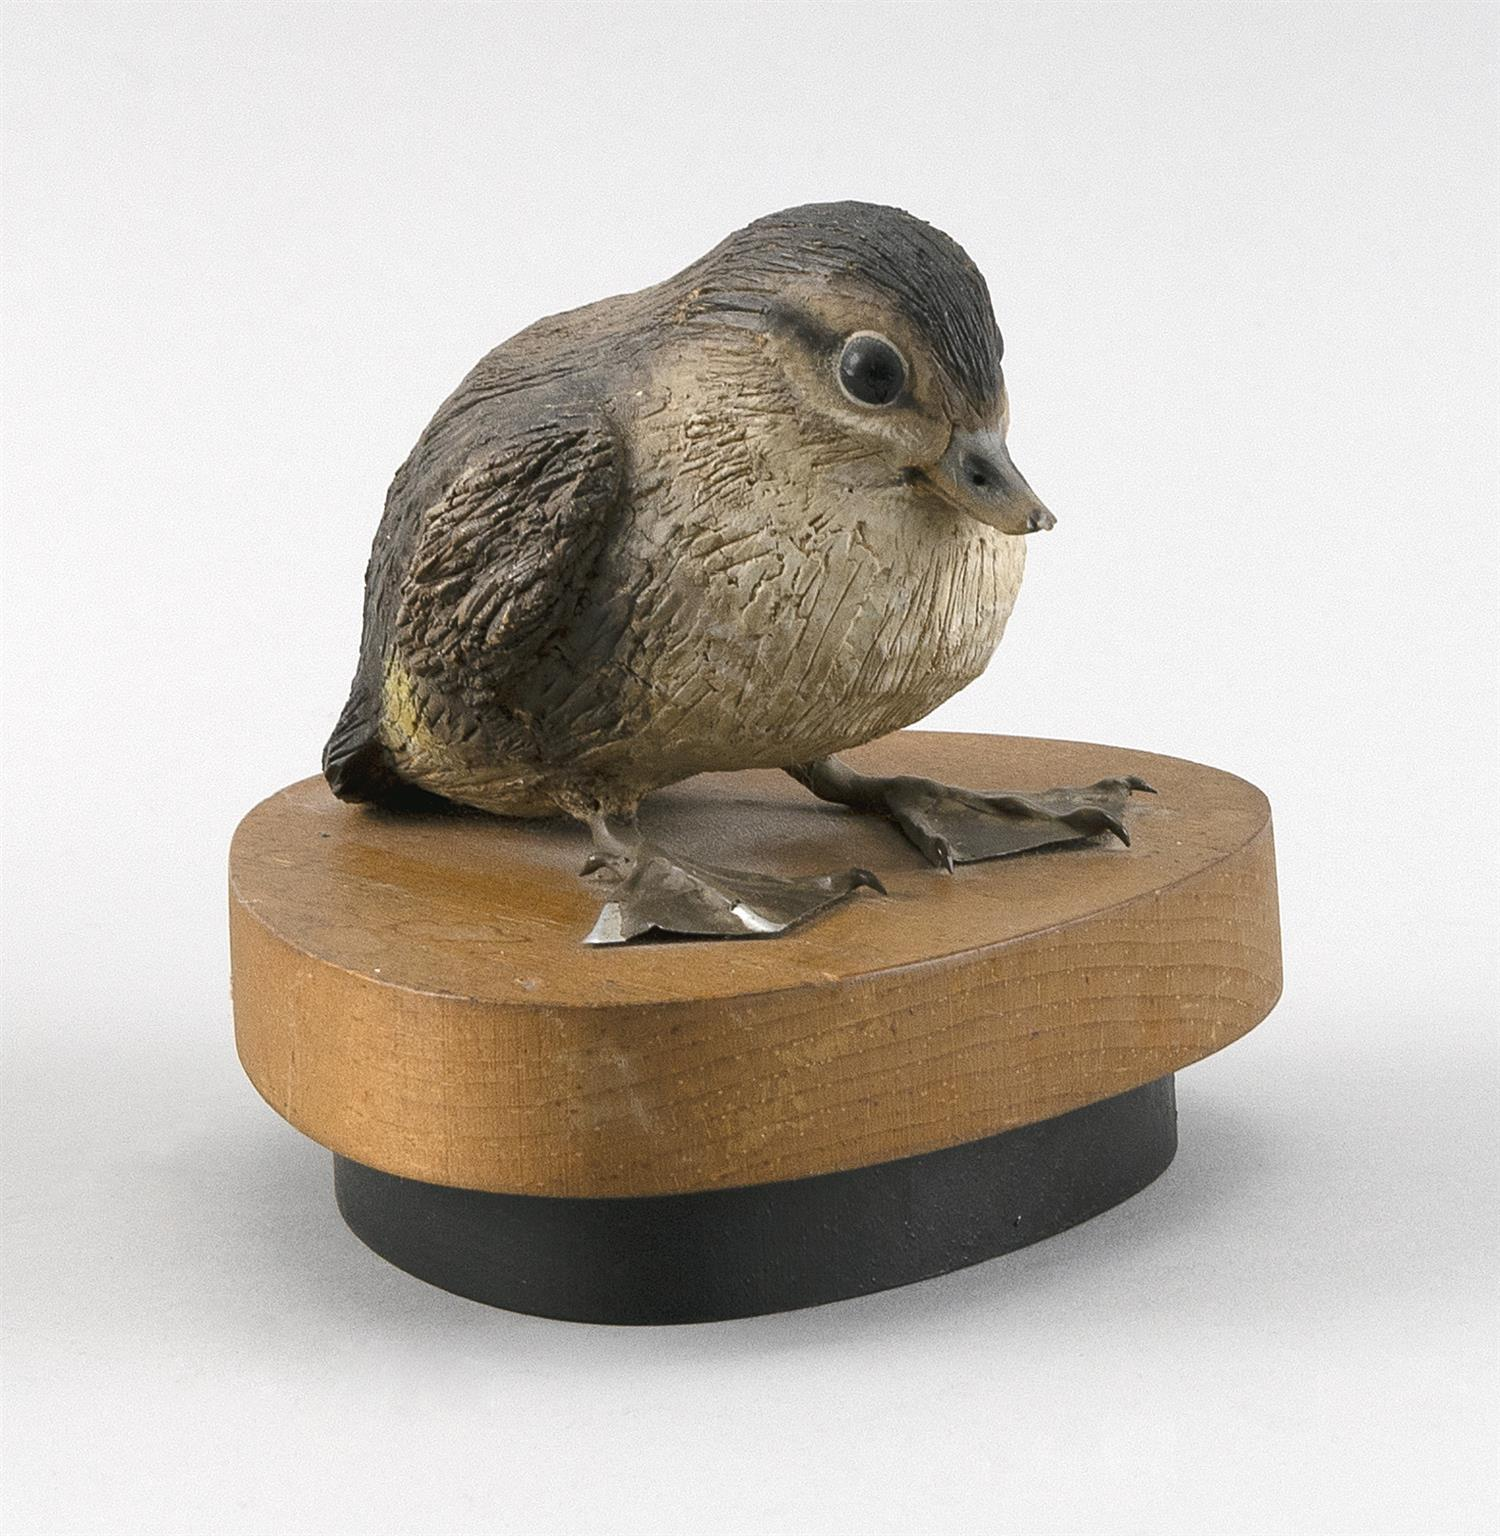 """STAN SPARRE LIFE-SIZE CARVING OF A """"3-DAY-OLD WOODY"""" BABY WOOD DUCK Mounted on a wooden base. Titled on base. Height 4""""."""